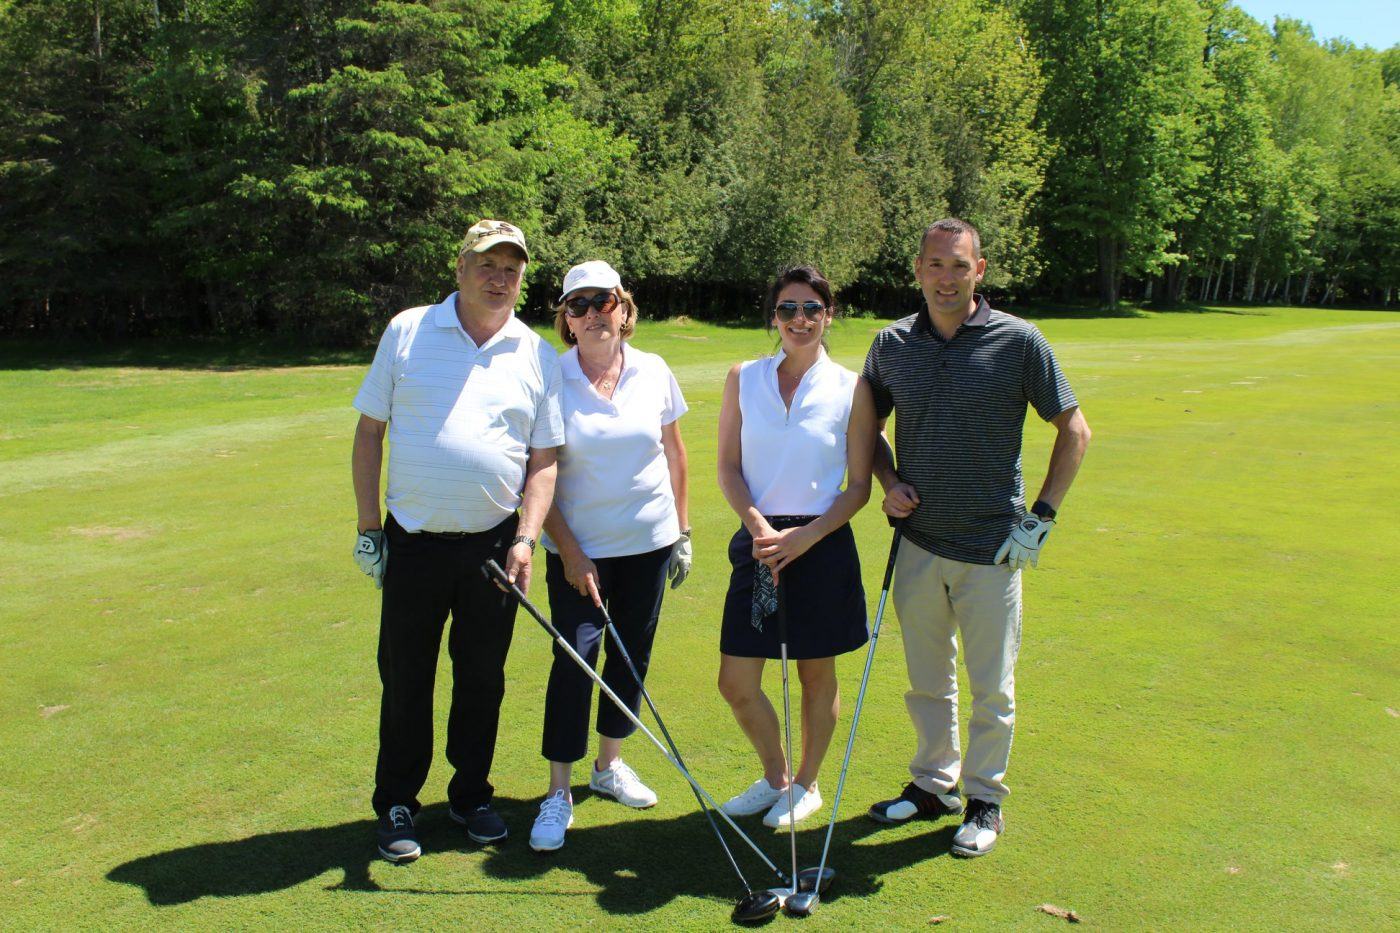 160 Golfers chip in and raise $65K for health care close to home in Mississippi Mills